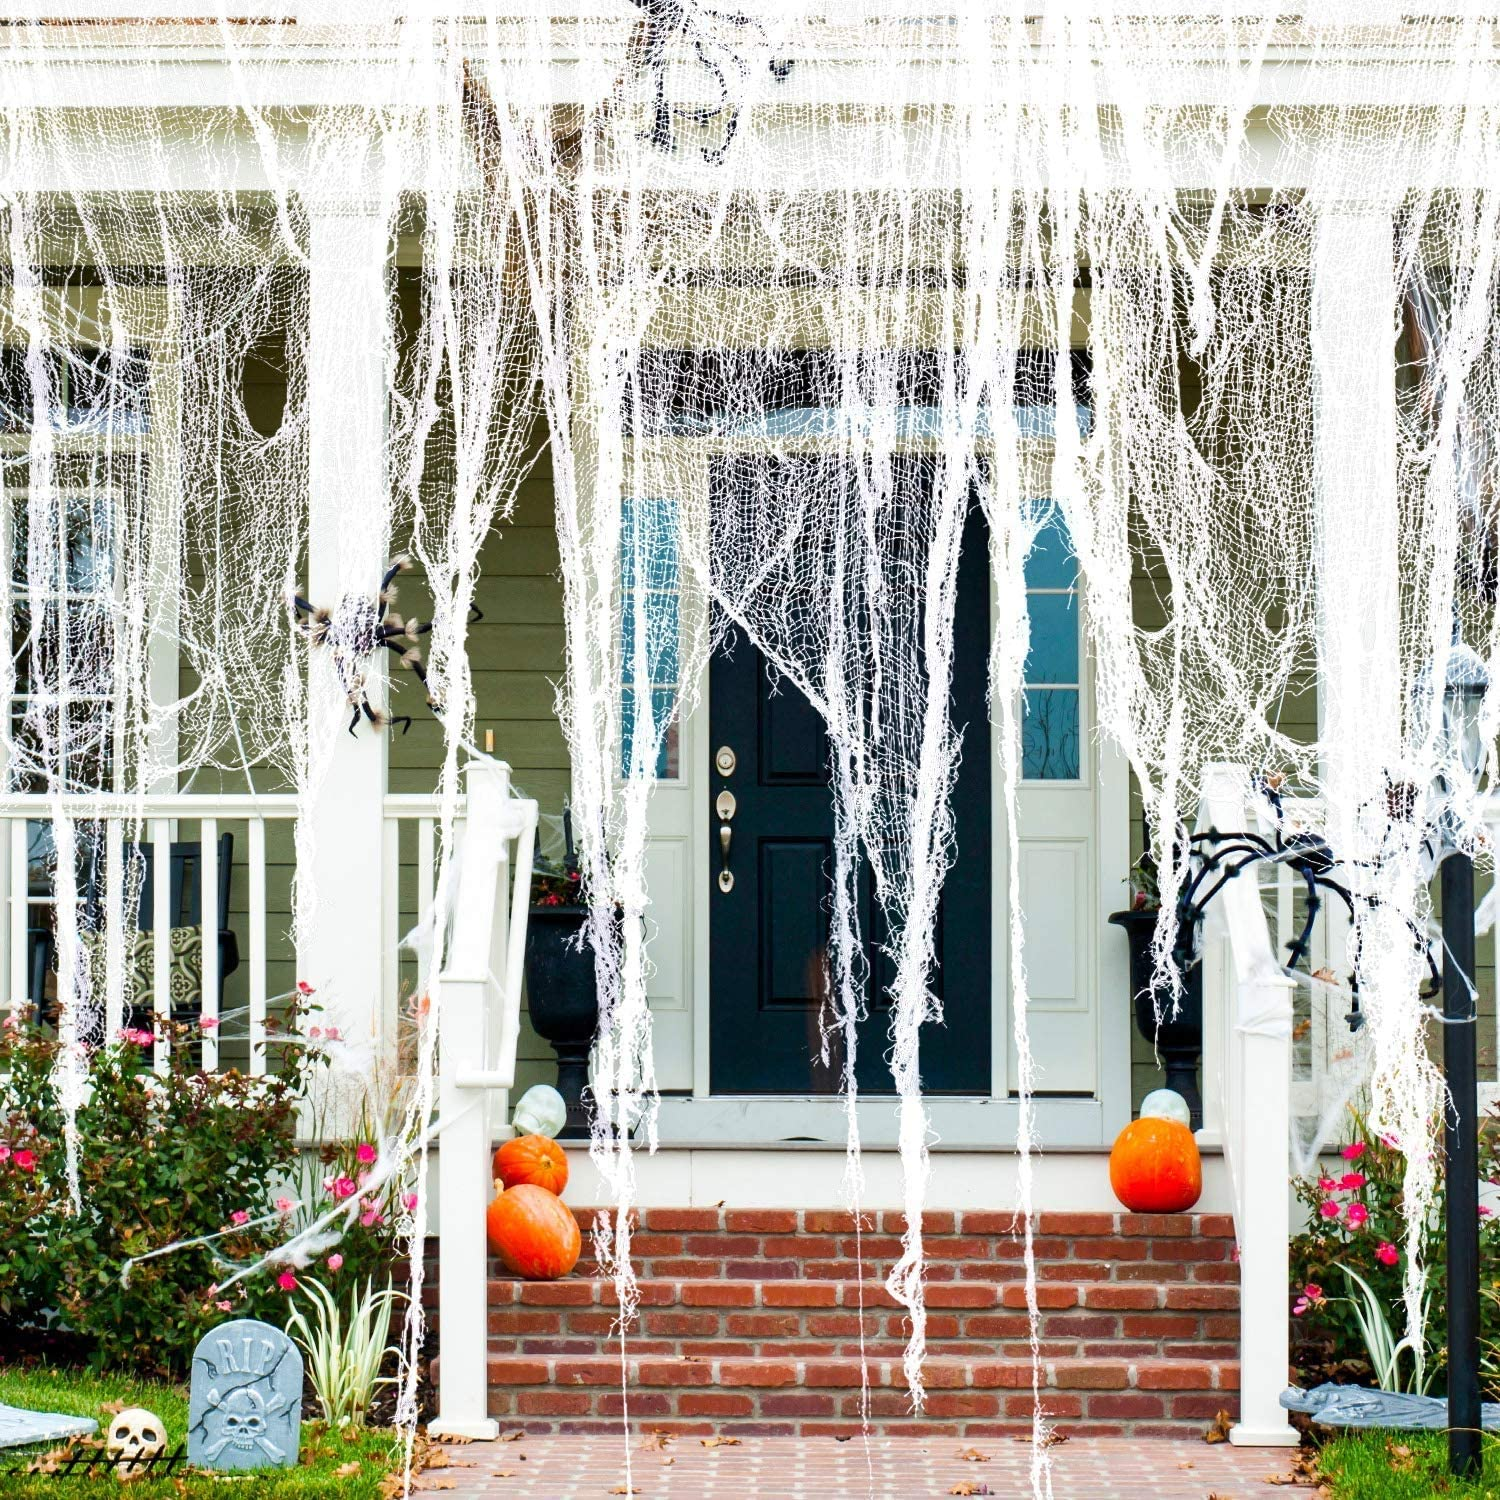 Halloween Creepy Cloth Decor 30x400 inch, Large Size Spooky Scary Fabrics Decoration with Fluorescent bat for Haunted Houses Party Supplies Doorways Outdoors Indoors Decoration-White